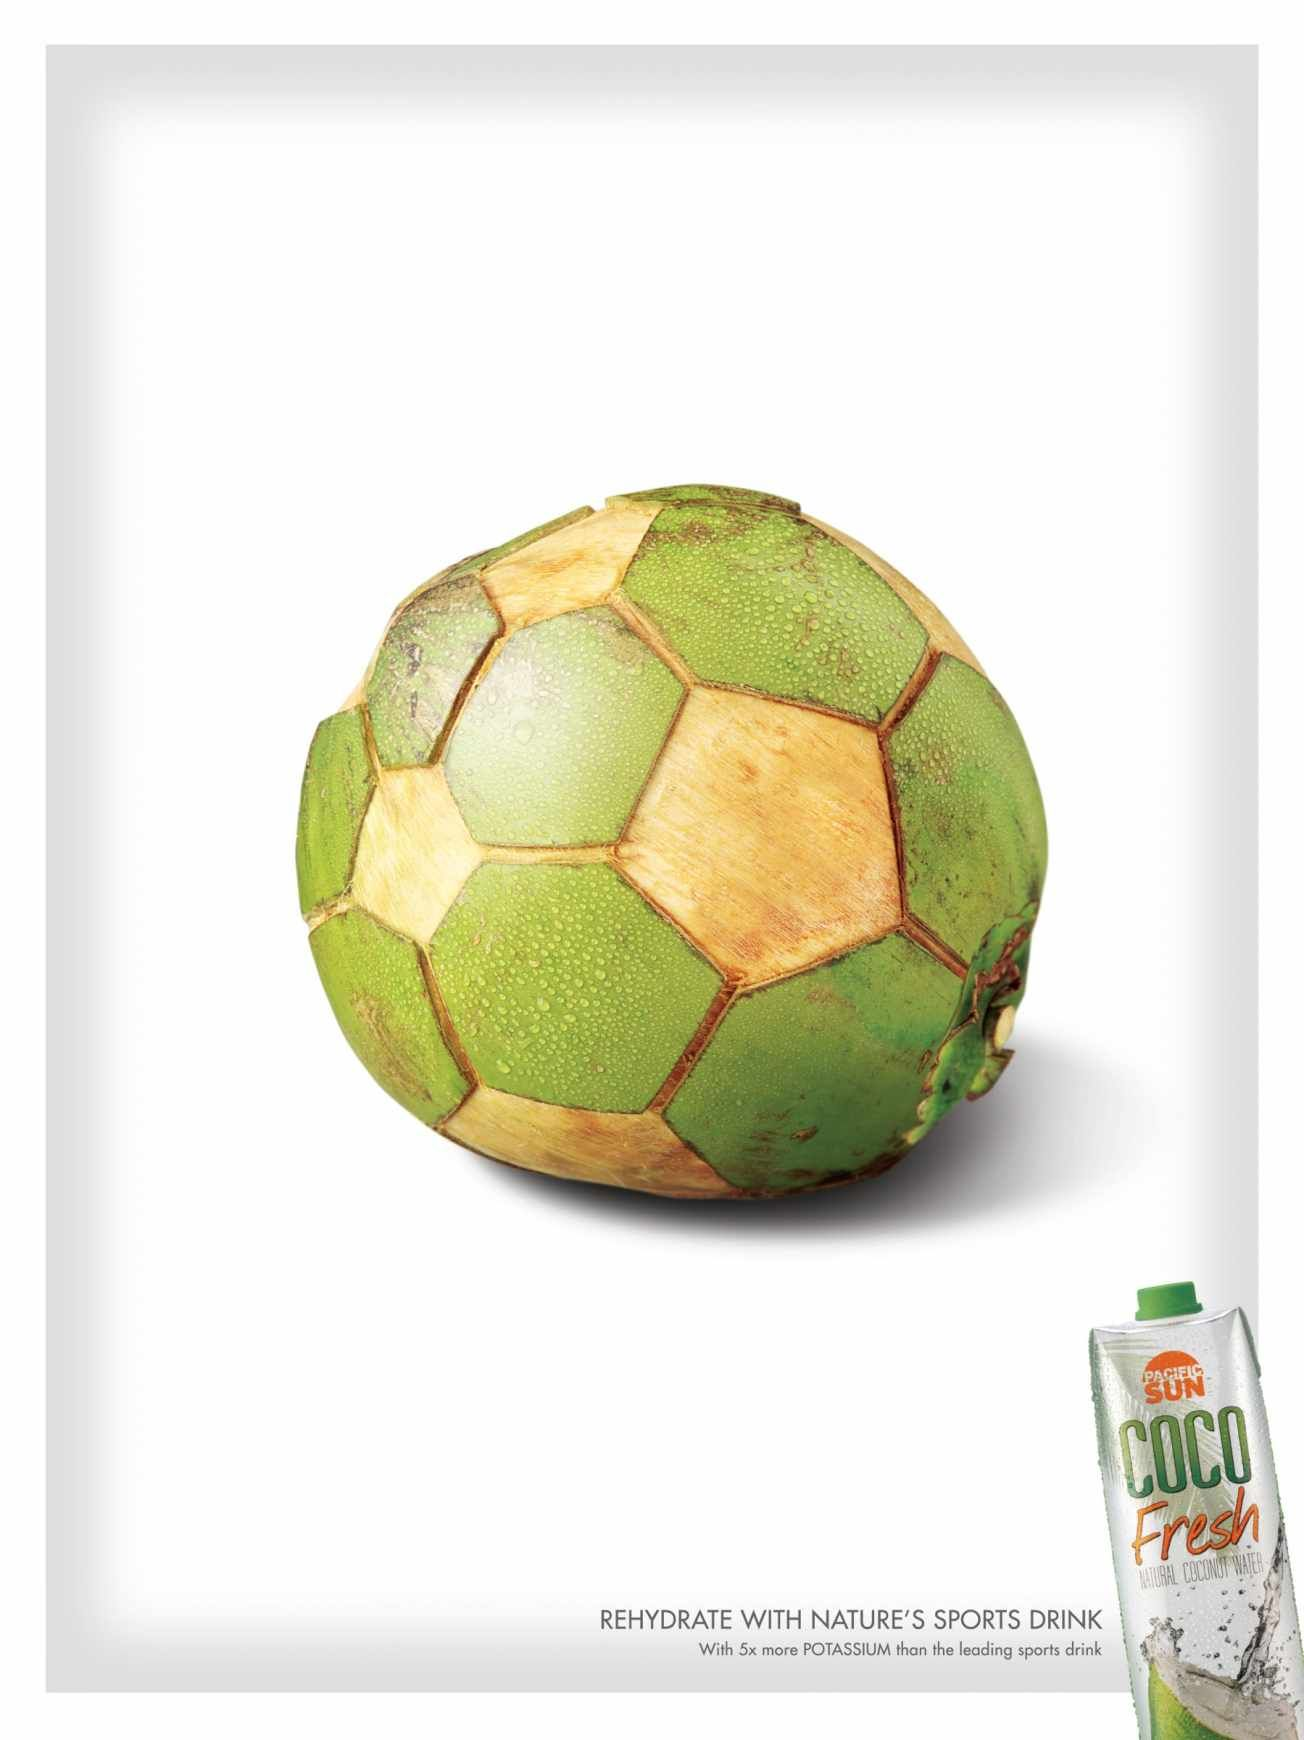 Coco Fresh Soccer Ball Ads Of The World Ads Creative Creative Advertising Graphic Design Advertising